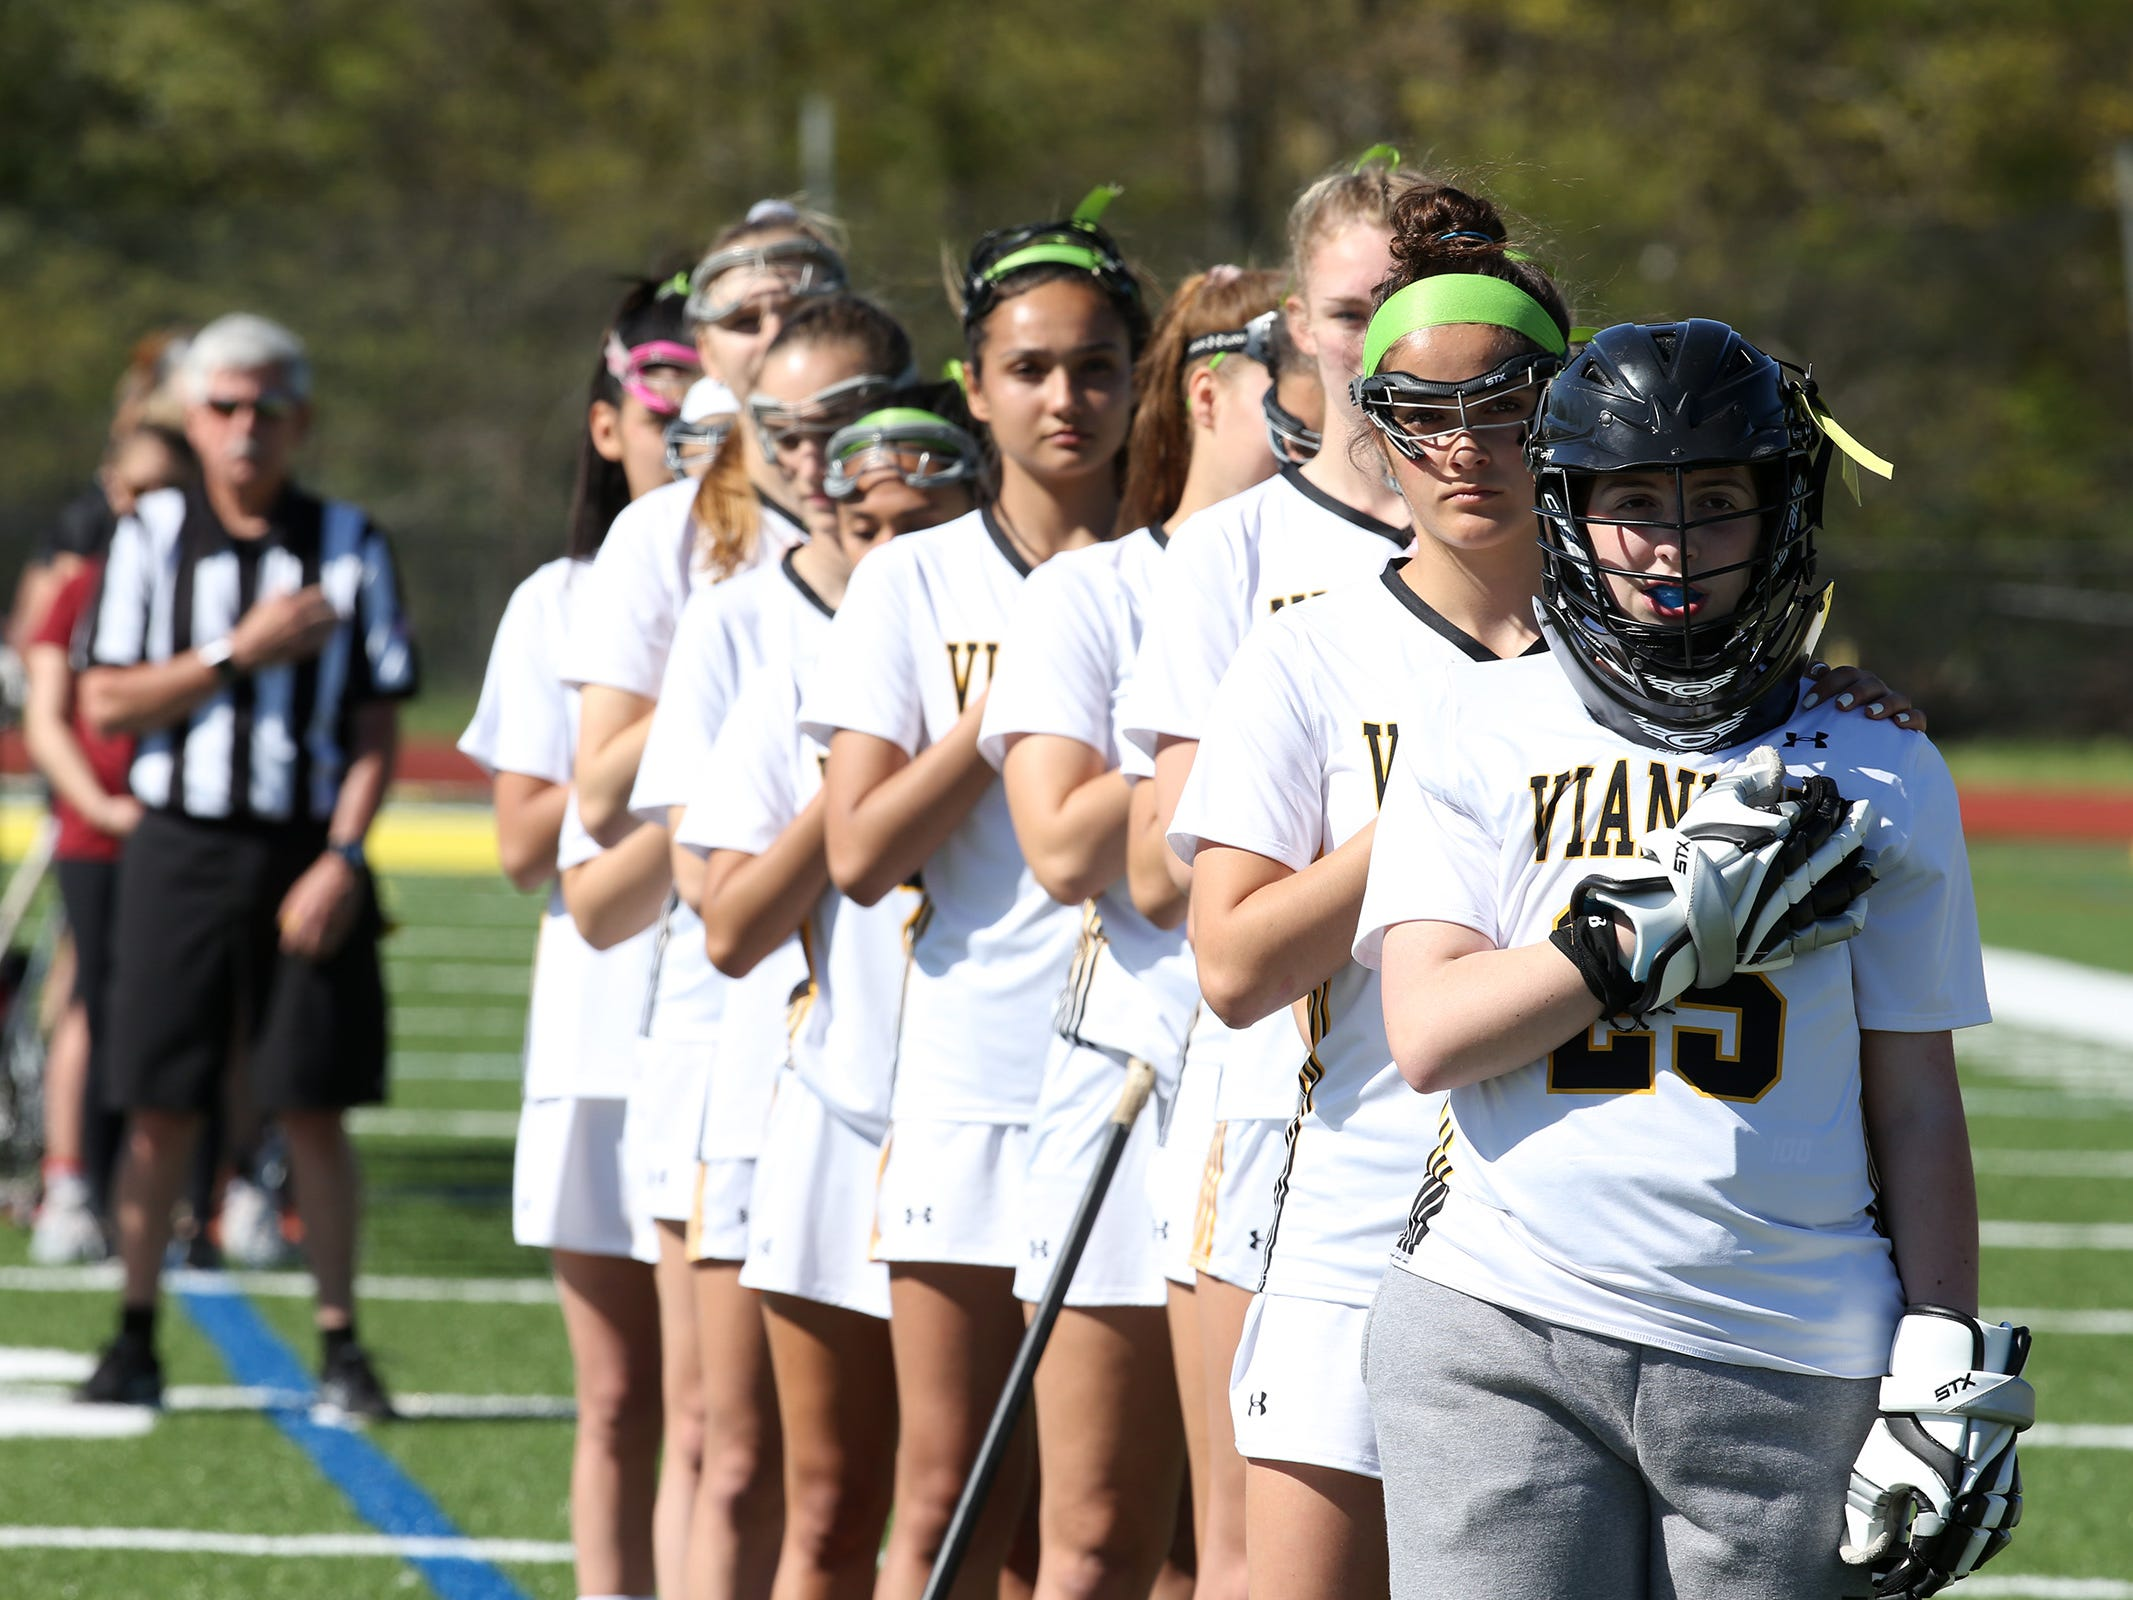 Maddie DiMezza, daughter of Teresa DiMezza, who is on a leave of absence from coaching the St. John Vianney girls lacrosse team, due to having a stroke late last year, salutes the American flag with her team before playing goalie during a game against Neptune at St. John Vianney High School in Holmdel, NJ Wednesday, April 24, 2019.